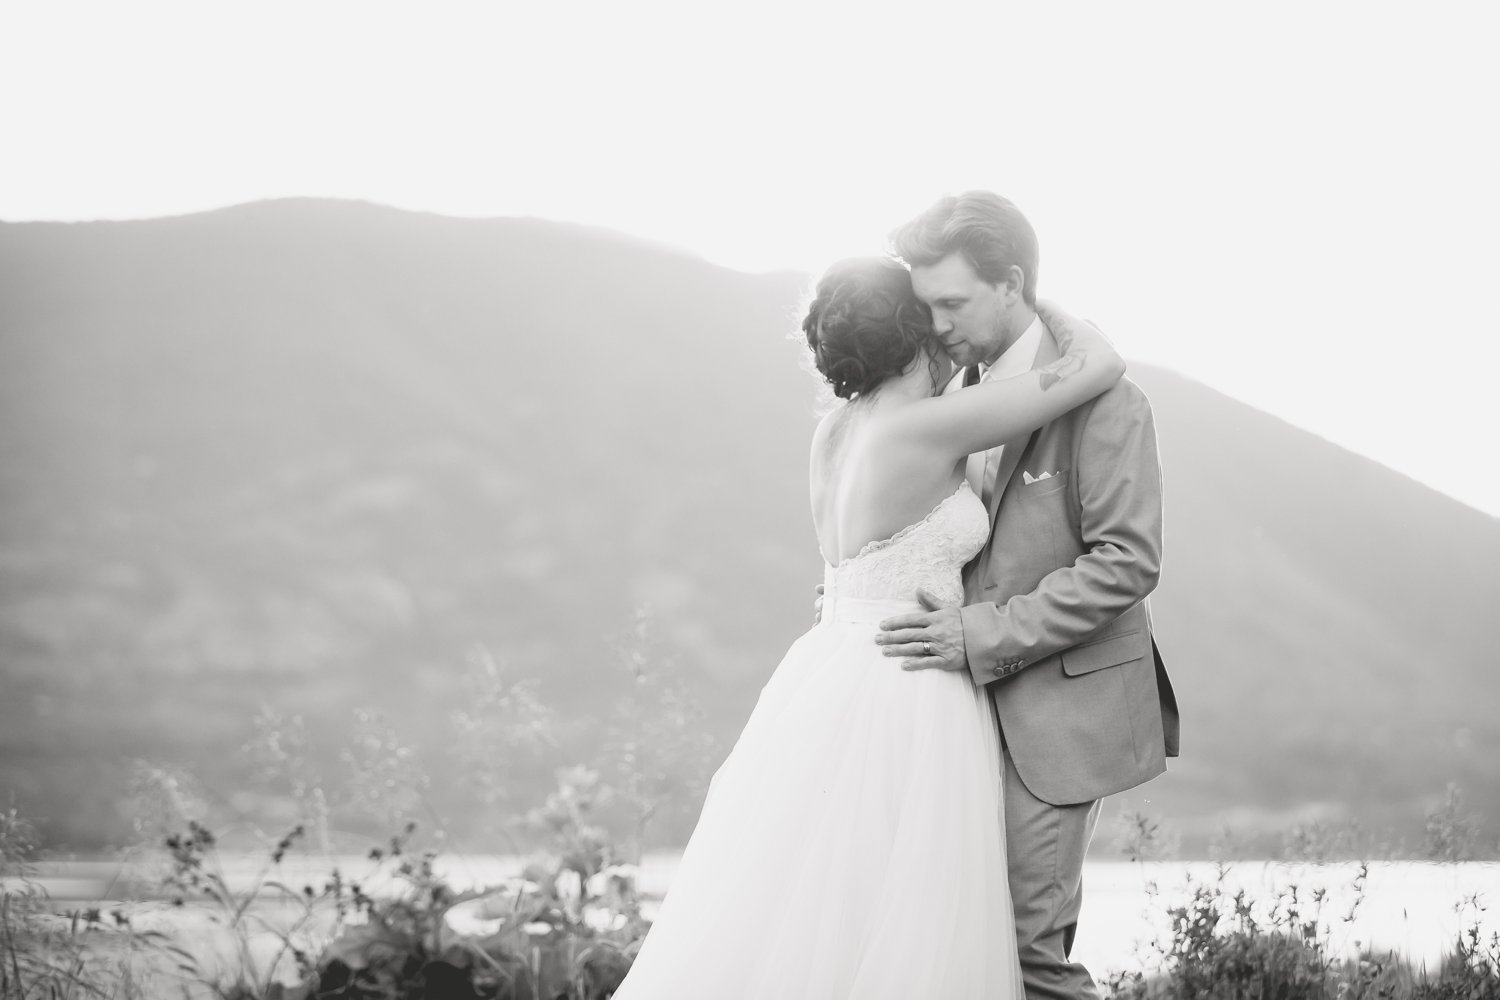 A couple hugging in front of a lakeview on their wedding day